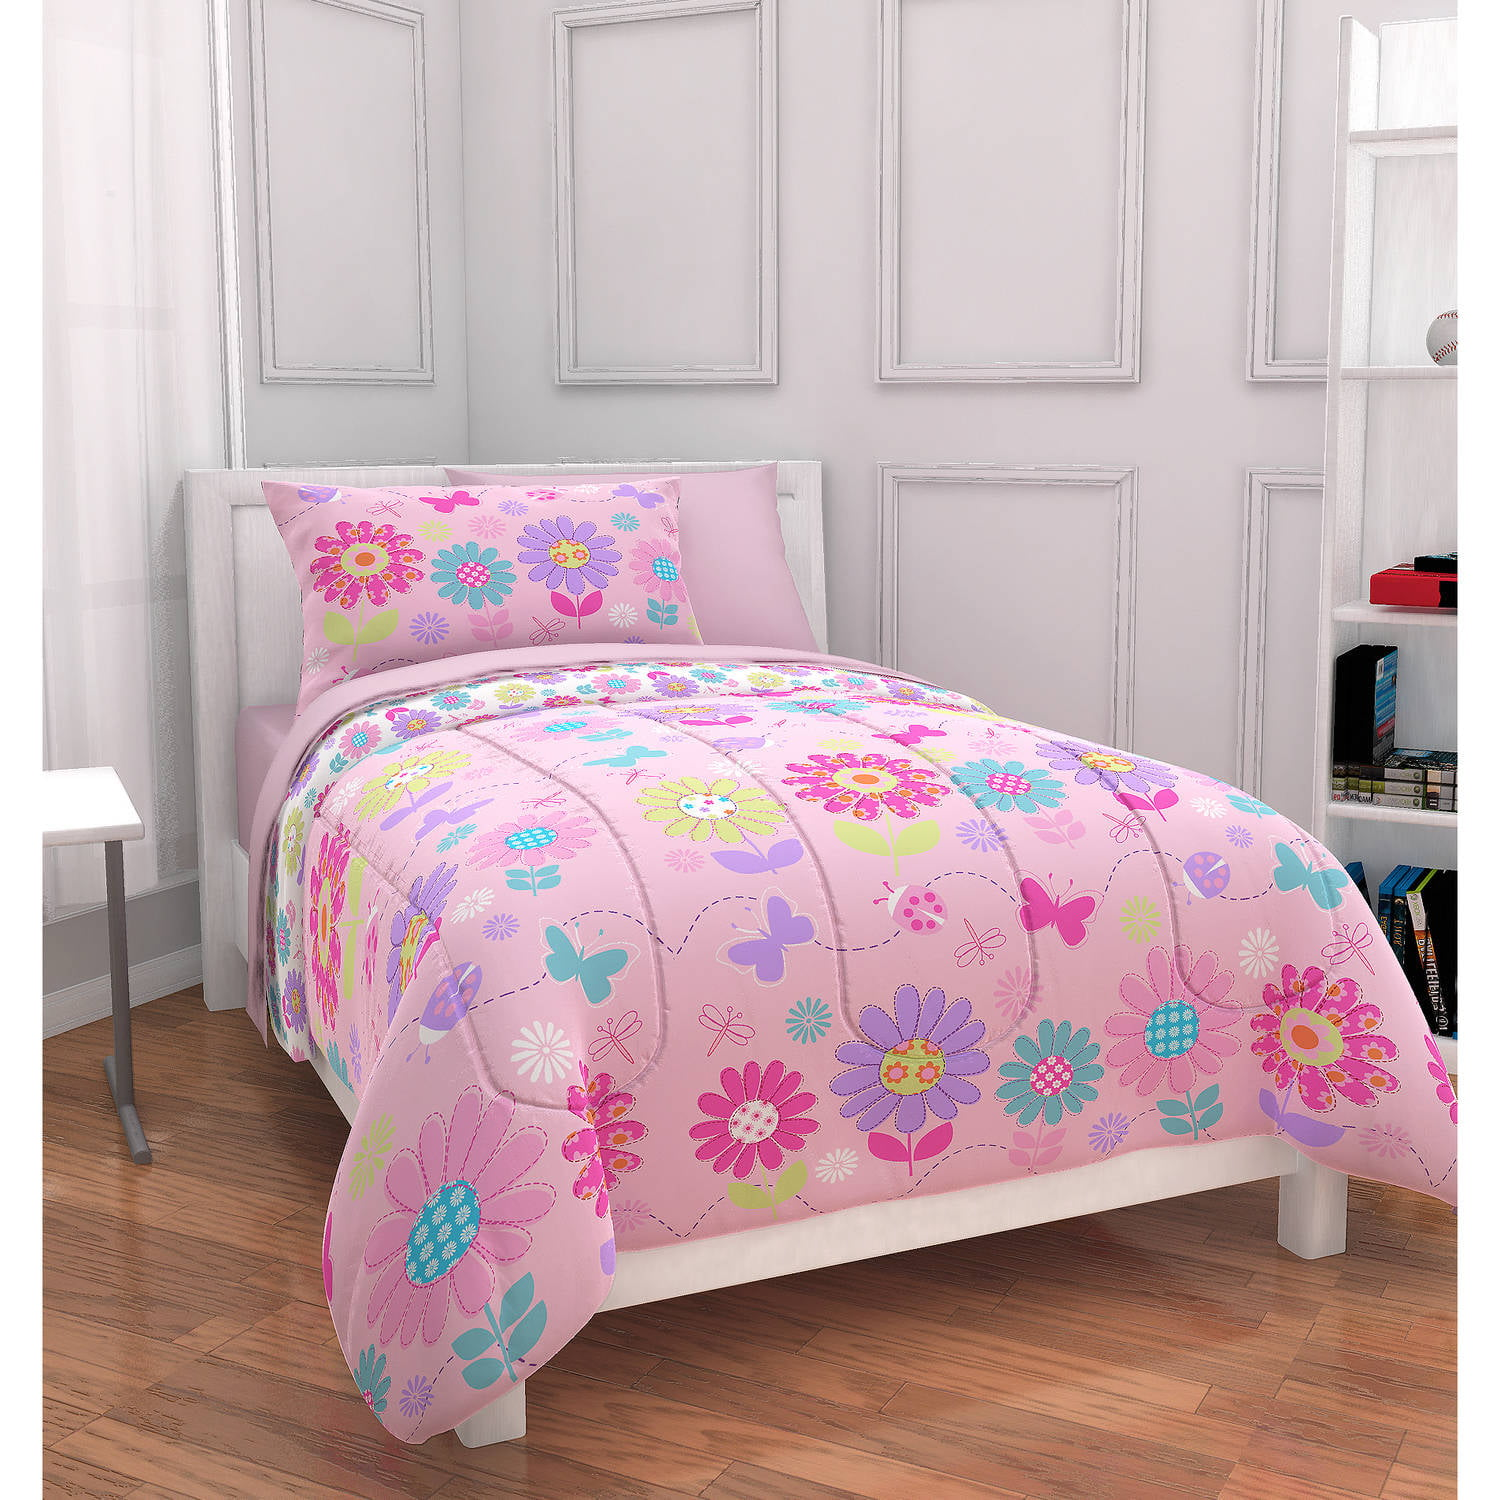 Mainstays Kids Daisy Floral Bed In A Bag Bedding Set   Walmart.com